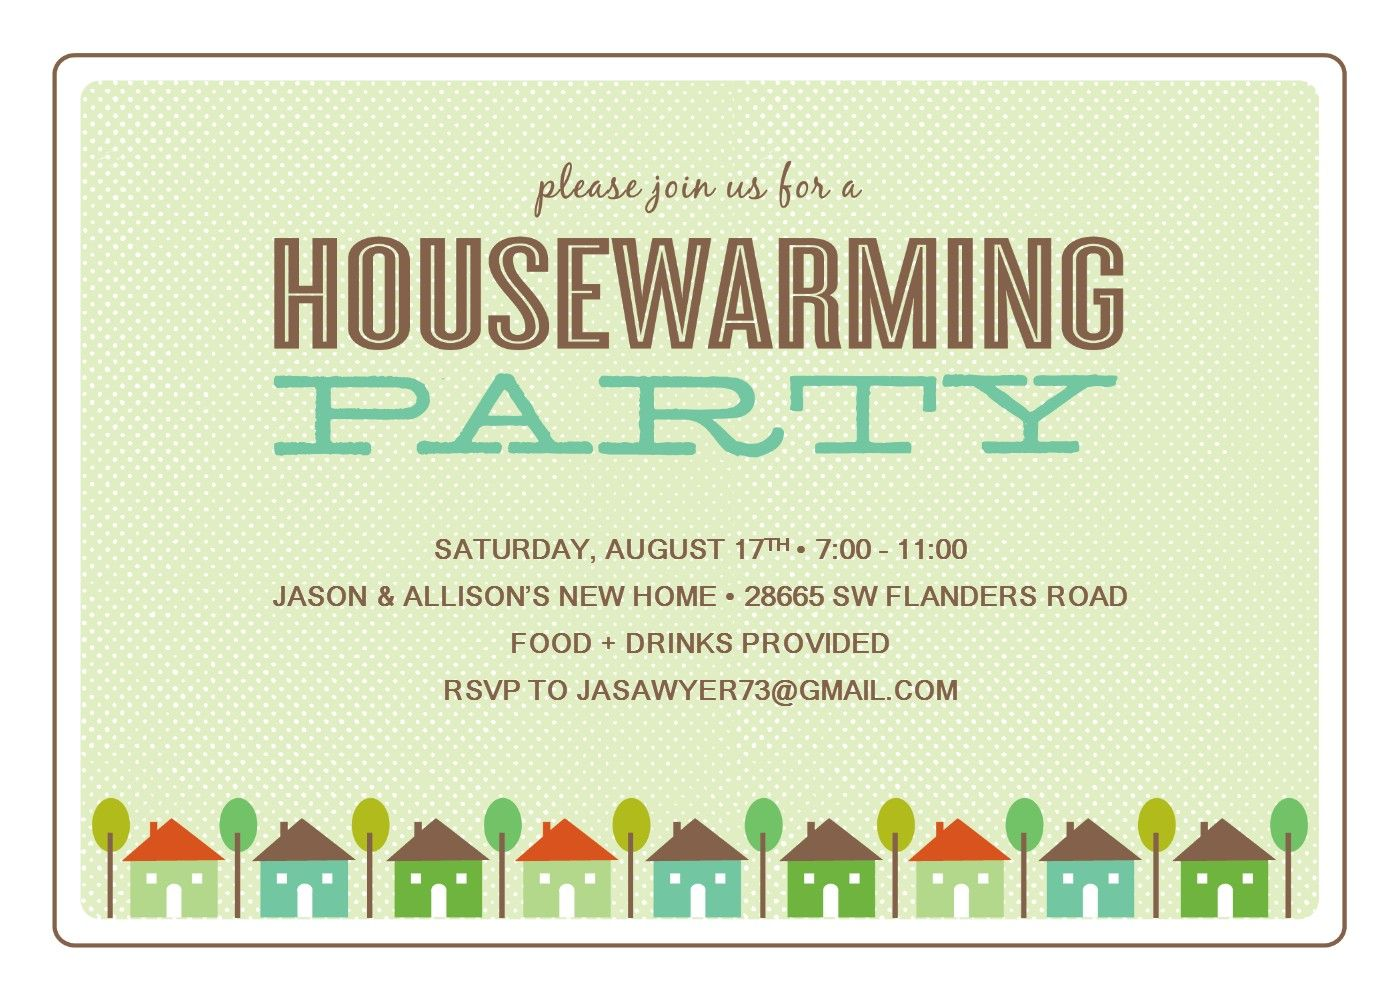 Housewarming Party Invitations Free Template – InviteTown | Party ...